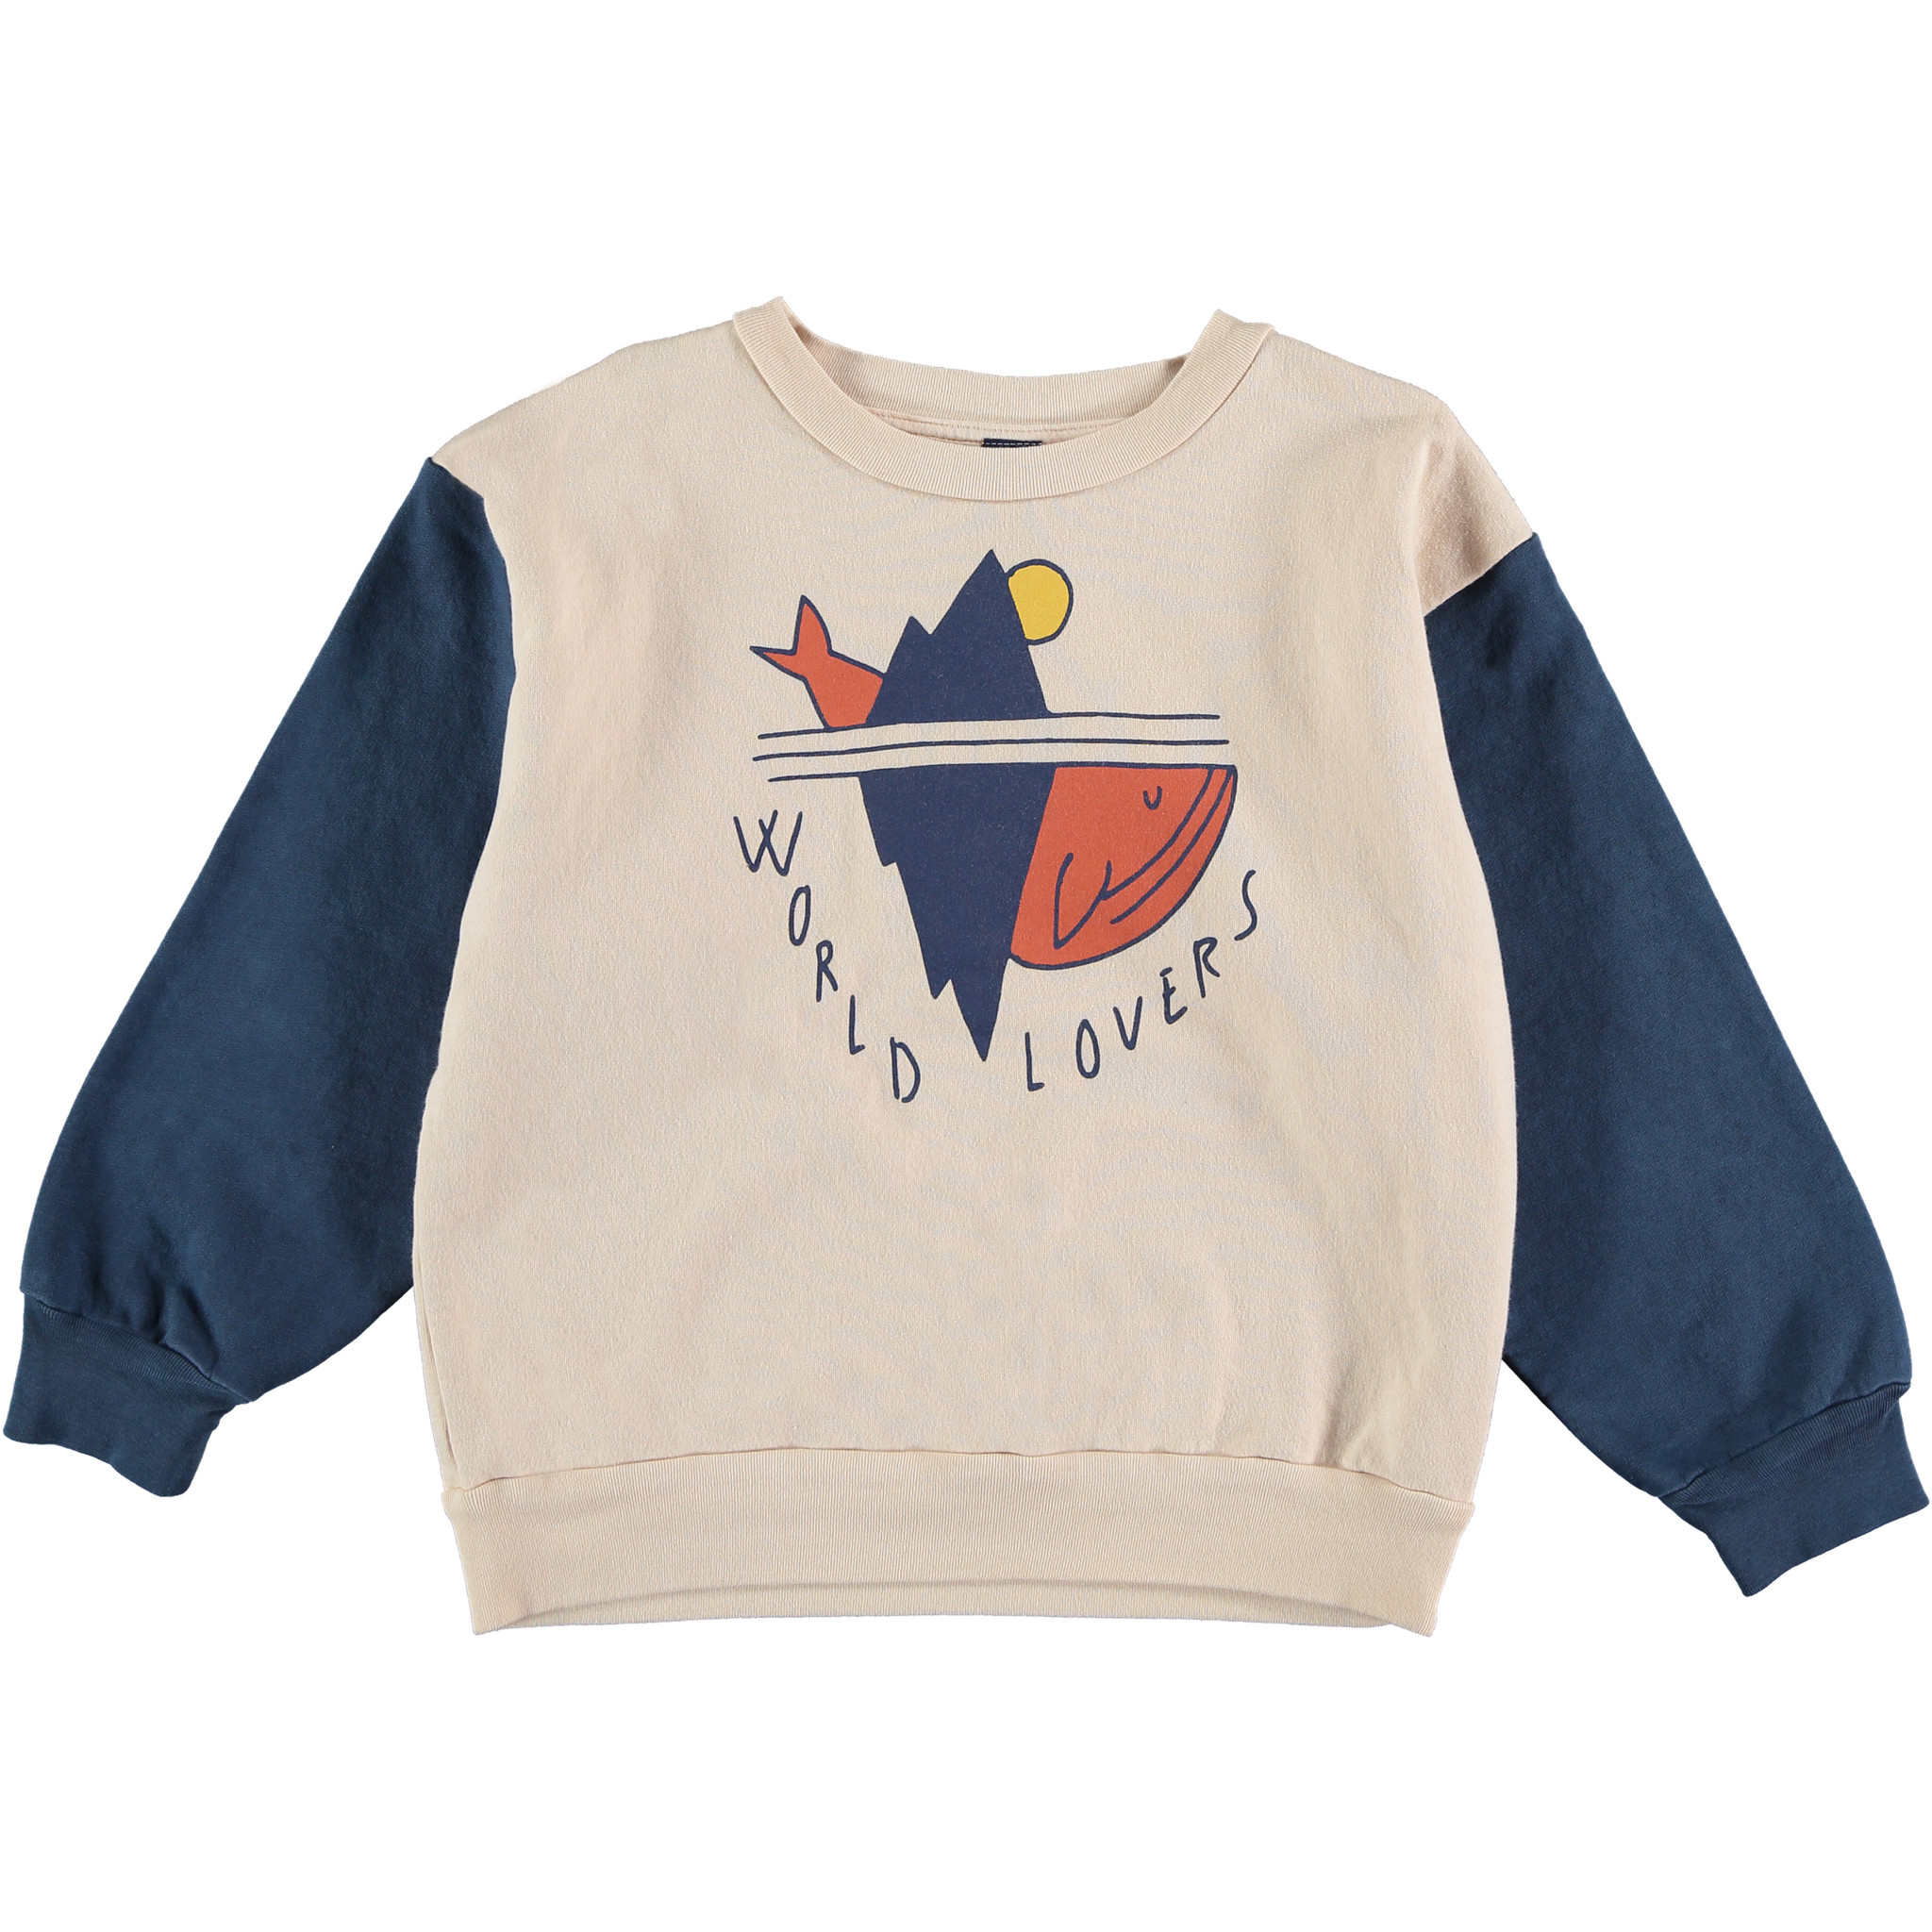 Sweatshirt - World Lovers Navy-1